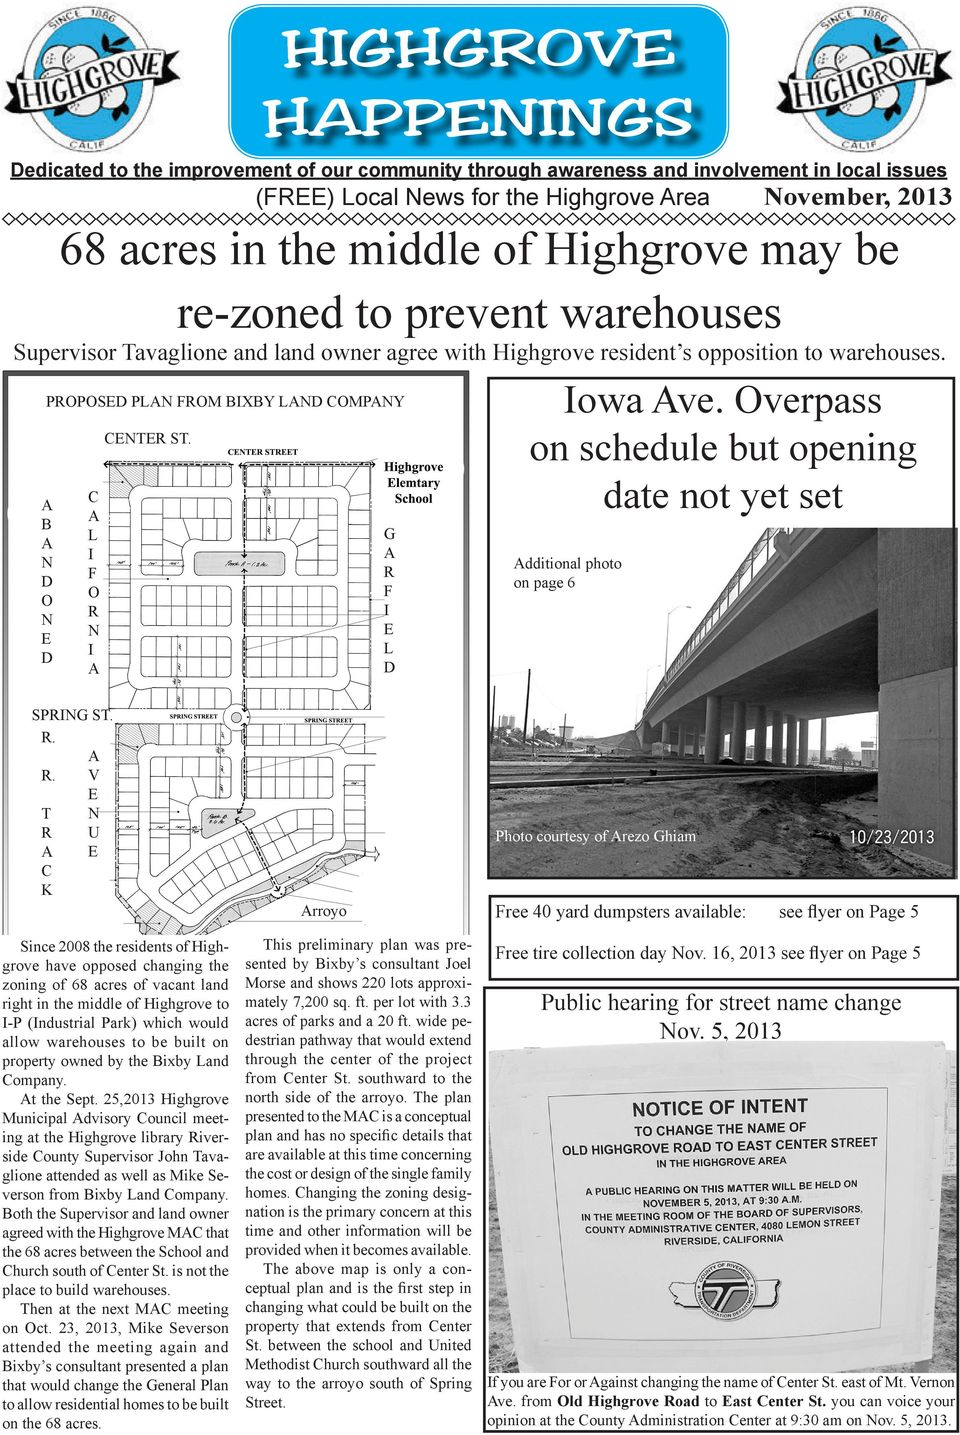 PROPOSED PLAN FROM BIXBY LAND COMPANY A B A N D O N E D C A L I F O R N I A CENTER ST. G A R F I E L D Iowa Ave. Overpass on schedule but opening date not yet set Additional photo on page 6 SPRING ST.